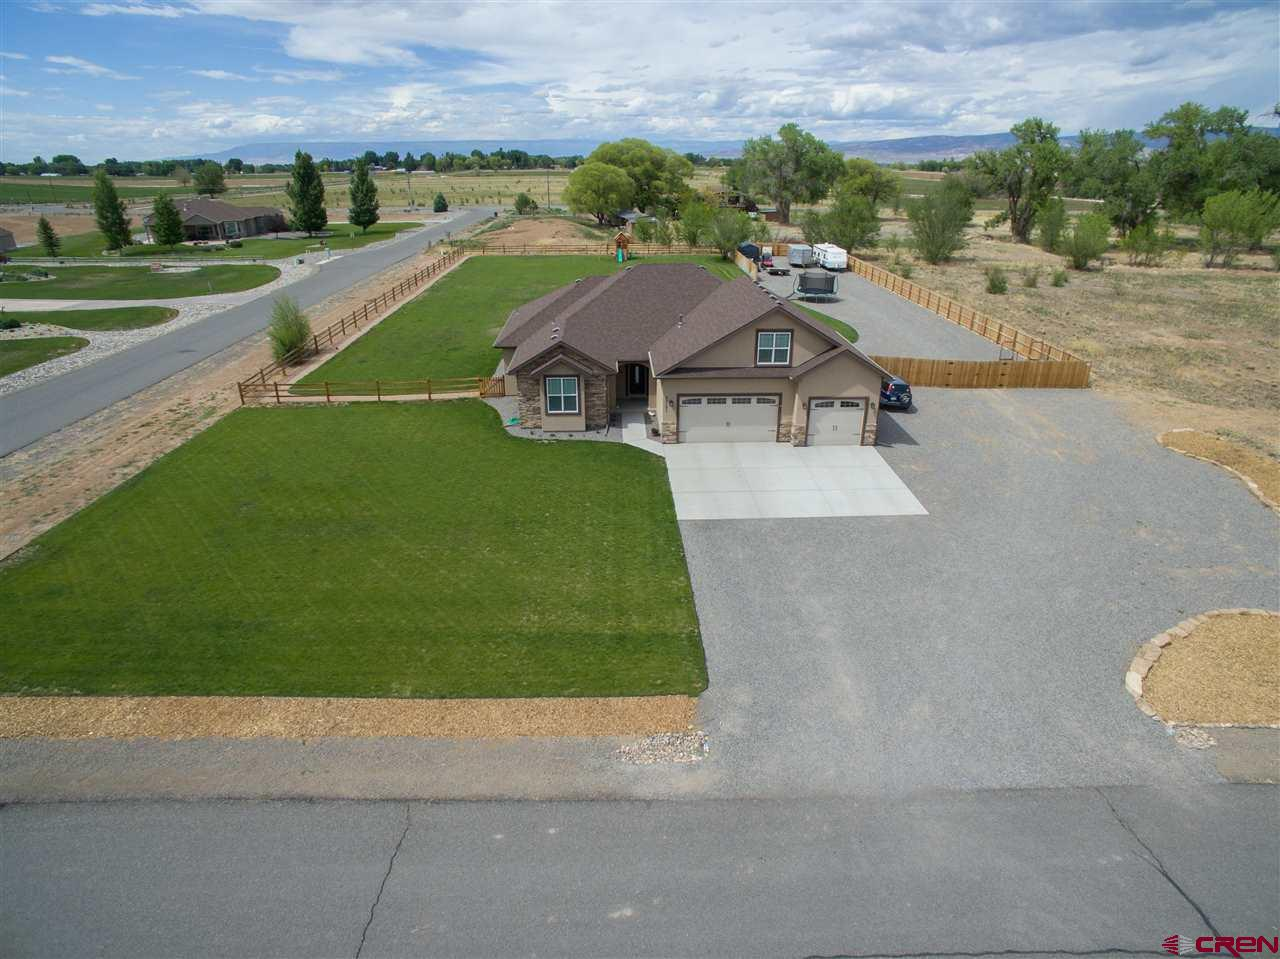 Imagine your life in a country setting, close to town, wildlife passing by, beautiful sunrises and sunsets all to be enjoyed in your beautiful custom home.  Inside is the perfect mix of style and function with room to work from home, or room to enjoy your favorite pastime.  The well designed and efficient kitchen showcases a five burner gas range, granite counter tops, and beautiful cabinetry that reach high into the ceilings and are enhanced with soft close mechanisms.  Large laundry room is strategically located as you come in from the garage.  The owner's suite with stunning trayed ceiling and spa-like bath give your a personal hideaway when you need a break. Two additional bedrooms and a bonus room leave all sorts of space for company, crafts or guests.  A bonus room over the garage could easily become a quilter's paradise, or a theater room.  Outside, enjoy the ease and space of being somewhat self sustaining with raised garden beds.  This is more than just a house, this is a lifestyle.